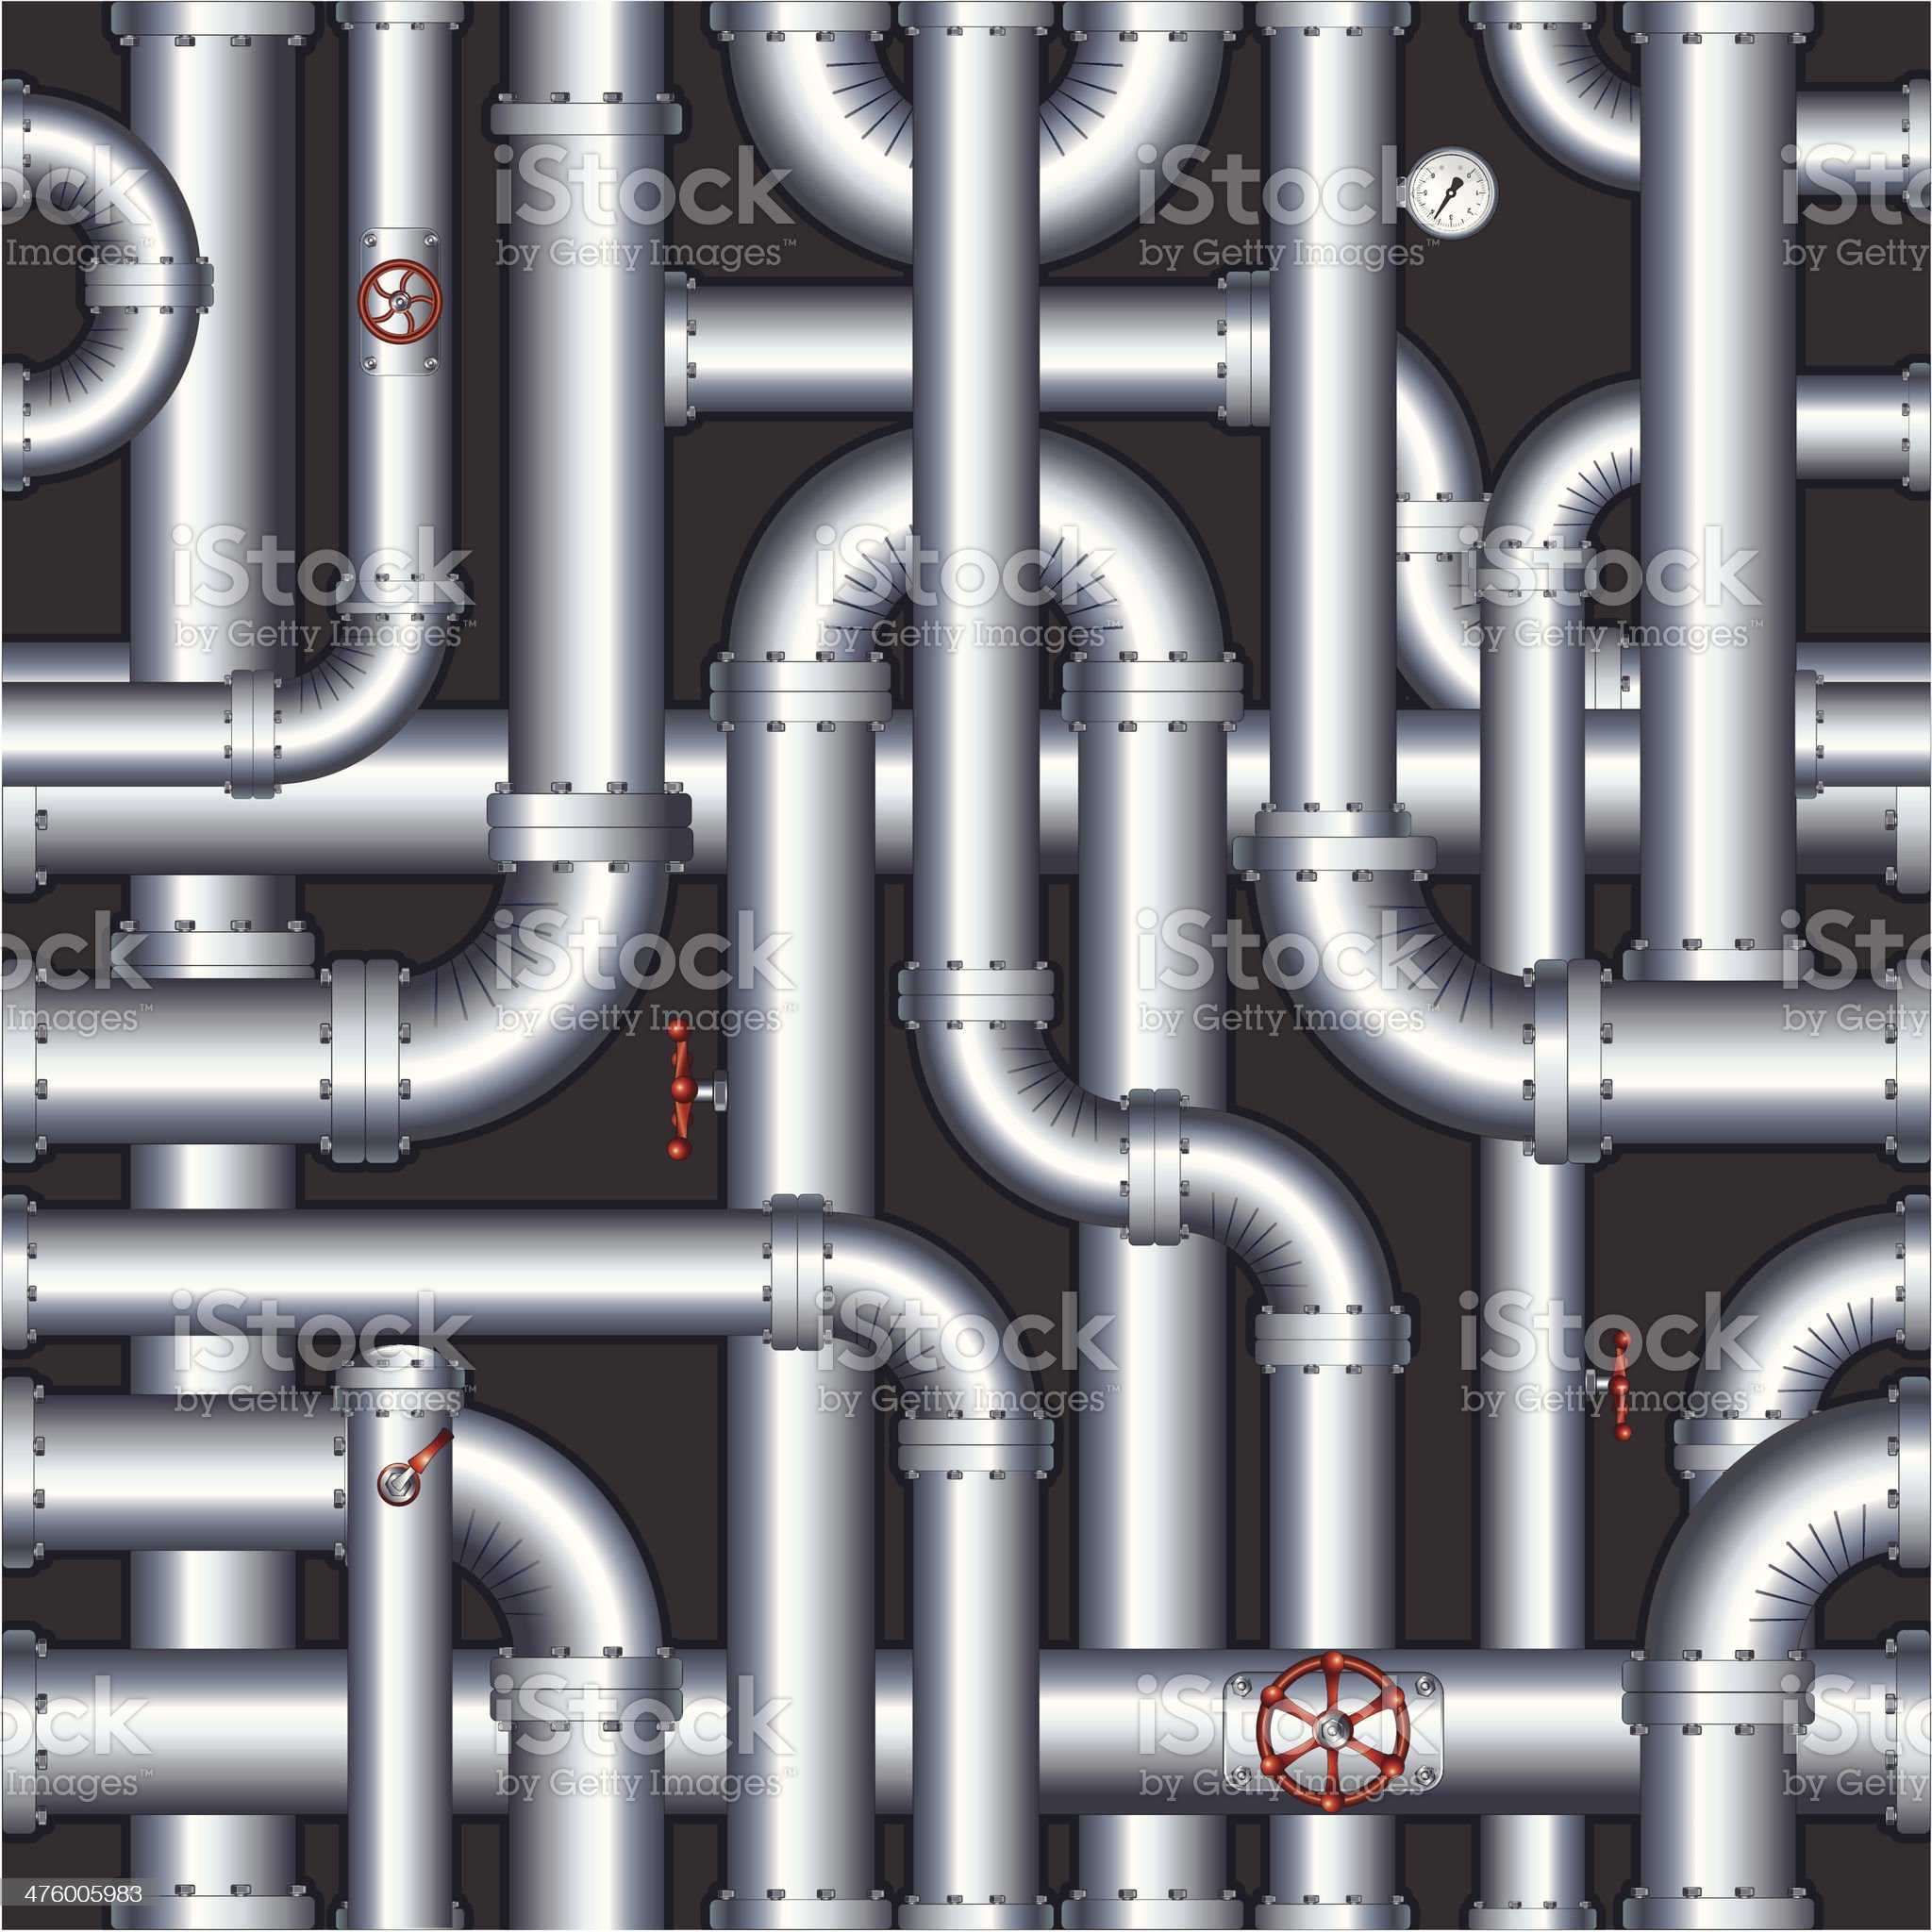 Pipe pattern royalty-free stock vector art